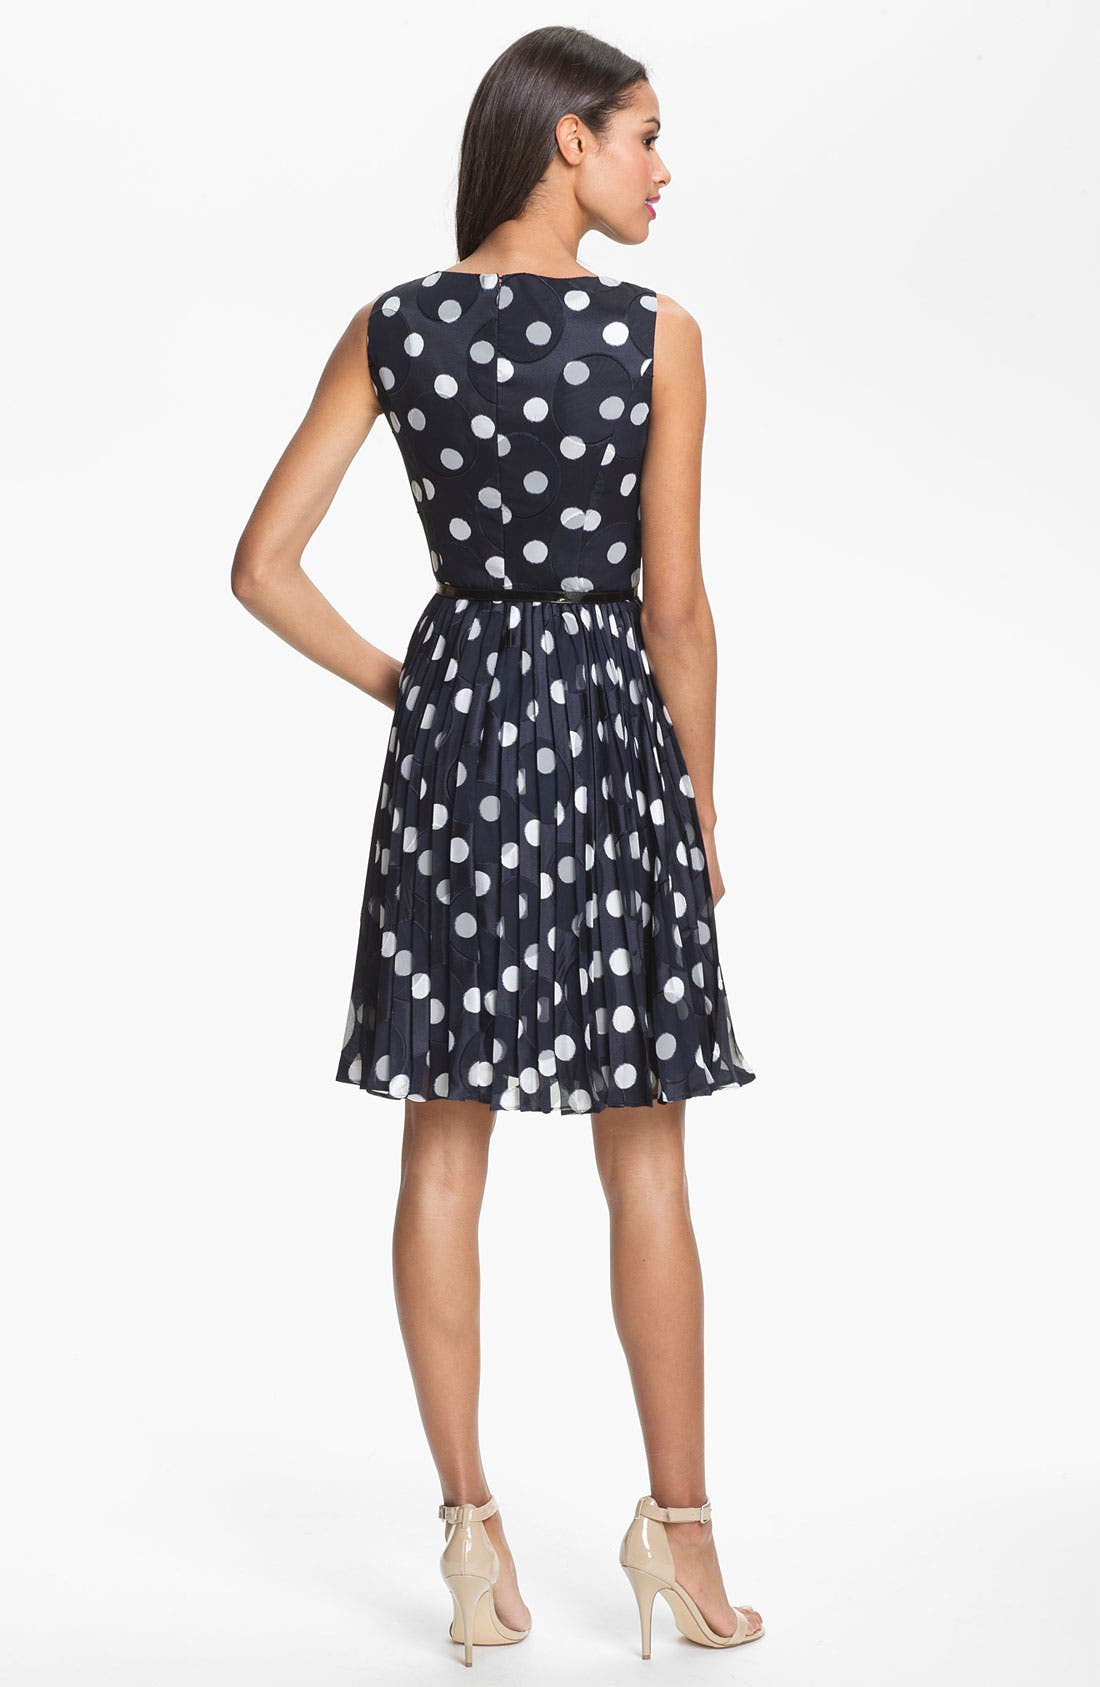 ADRIANNA PAPELL,                             Burnout Polka Dot Fit & Flare Dress,                             Alternate thumbnail 2, color,                             412